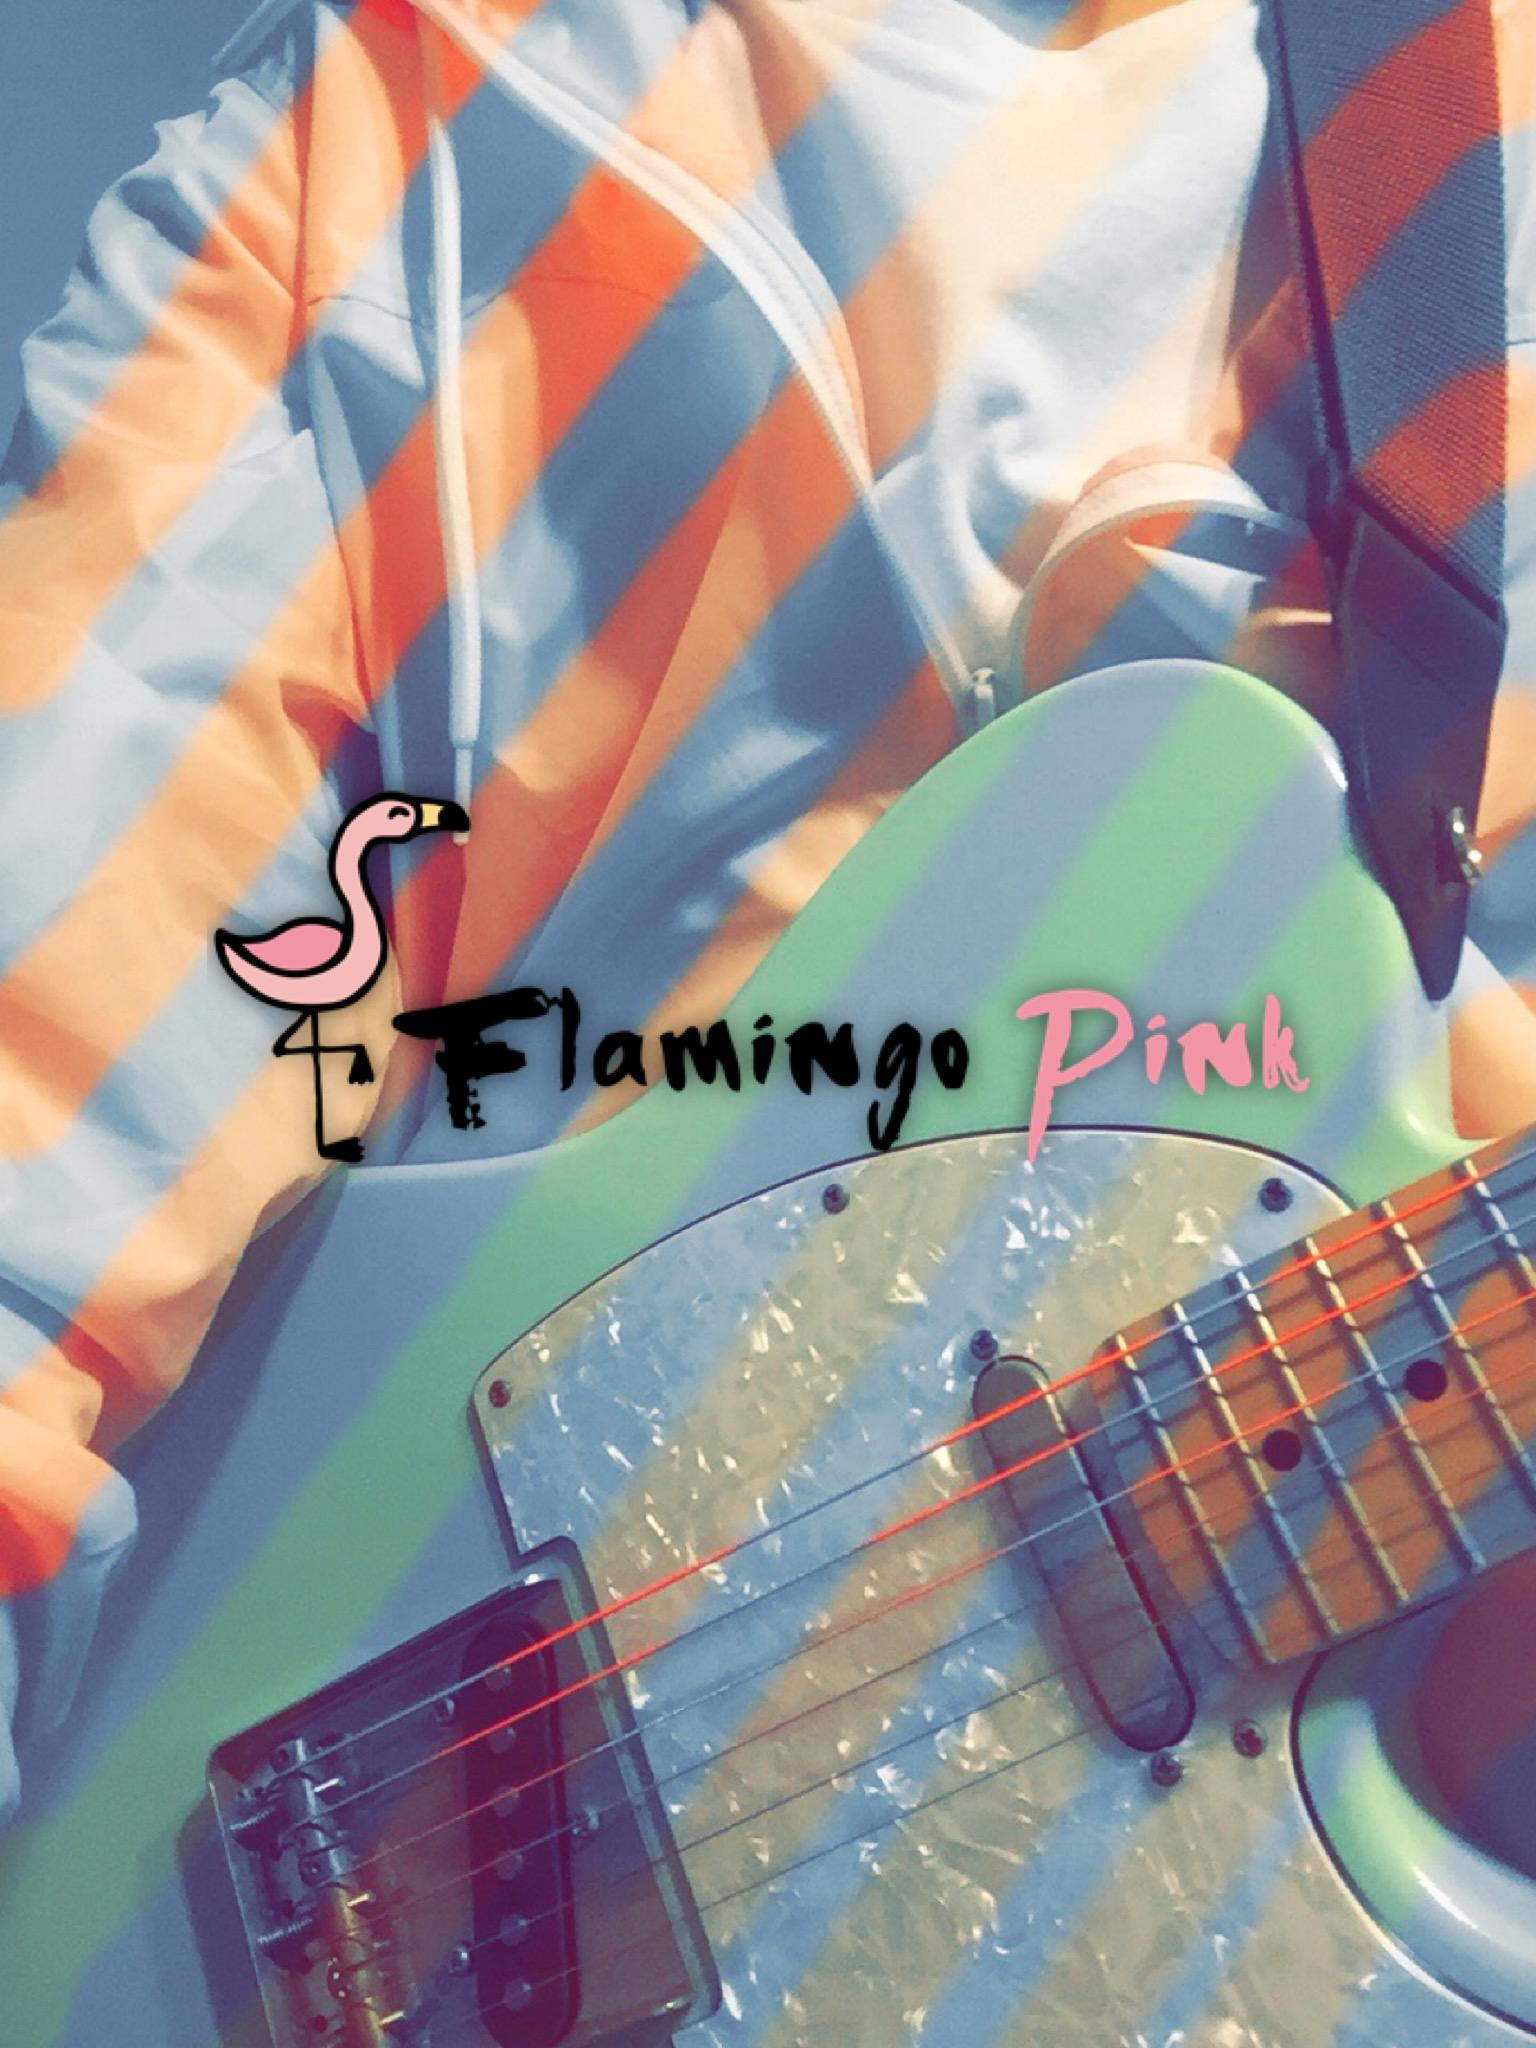 Flamingo Pink LIVE @ The Roxy Encinitas